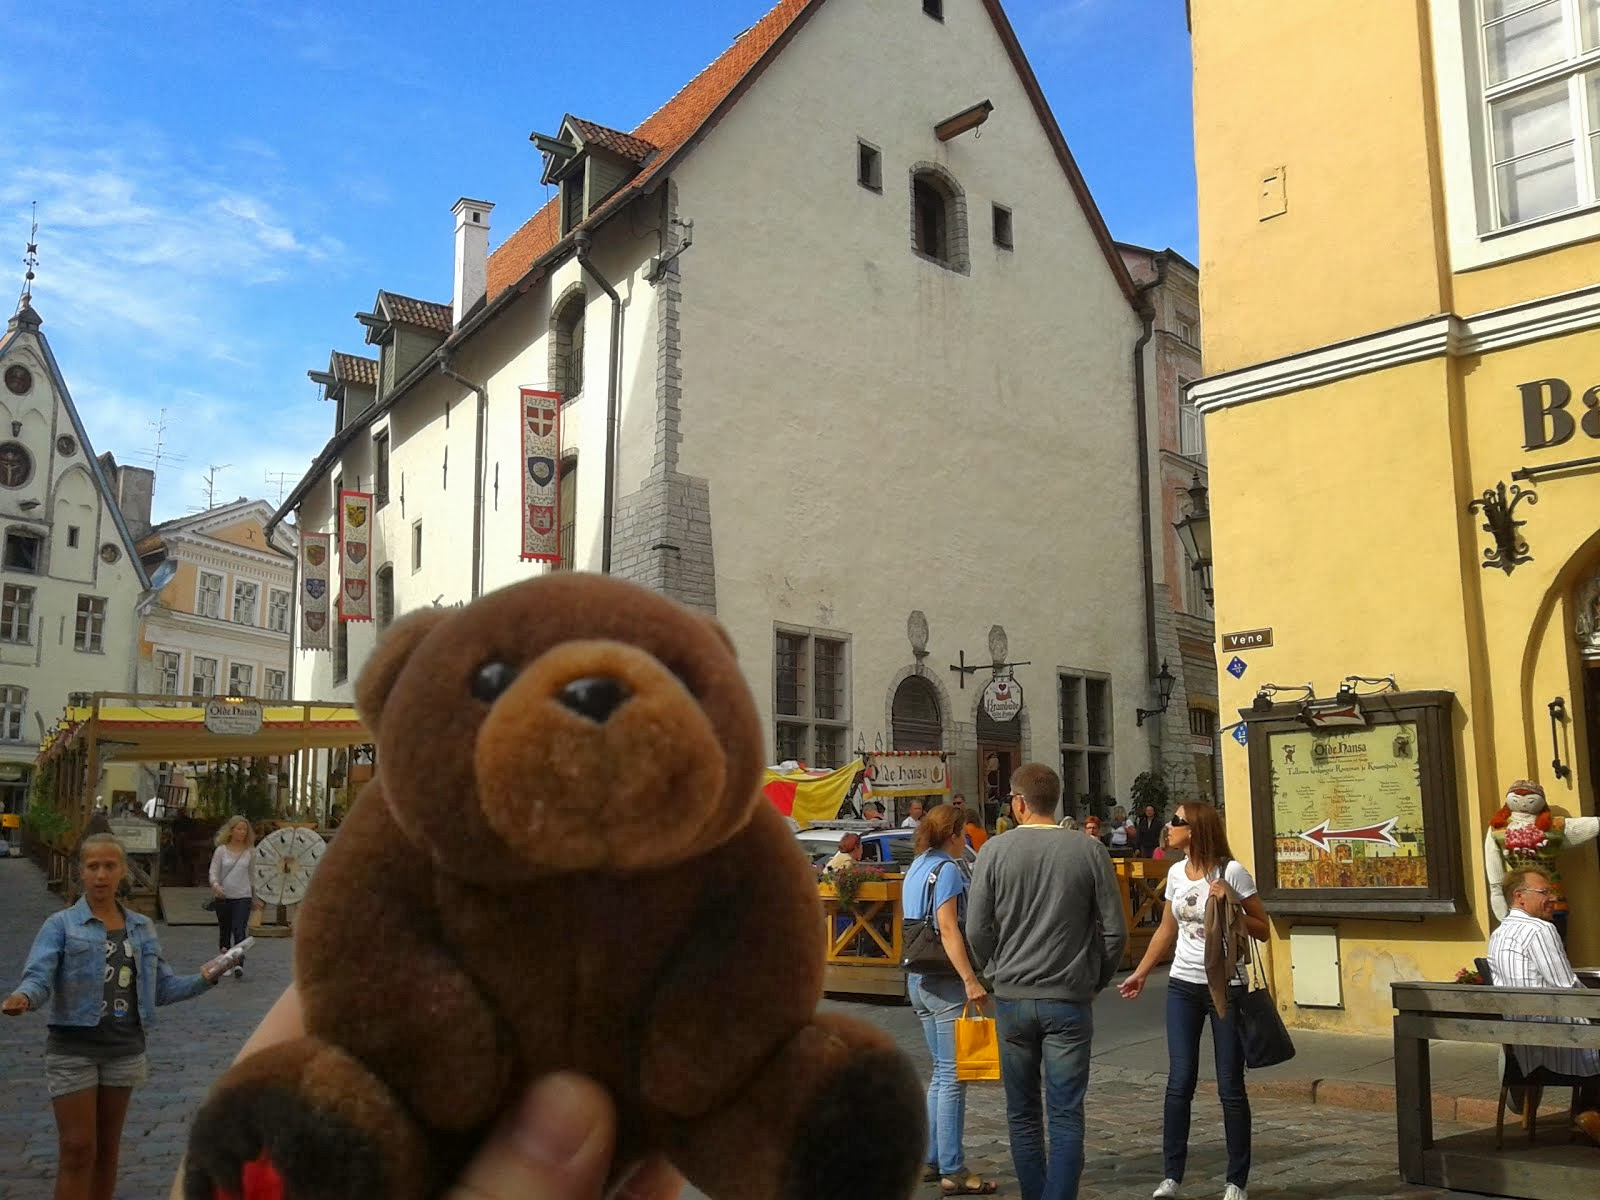 Teddy Bear in Tallinn, Estonia